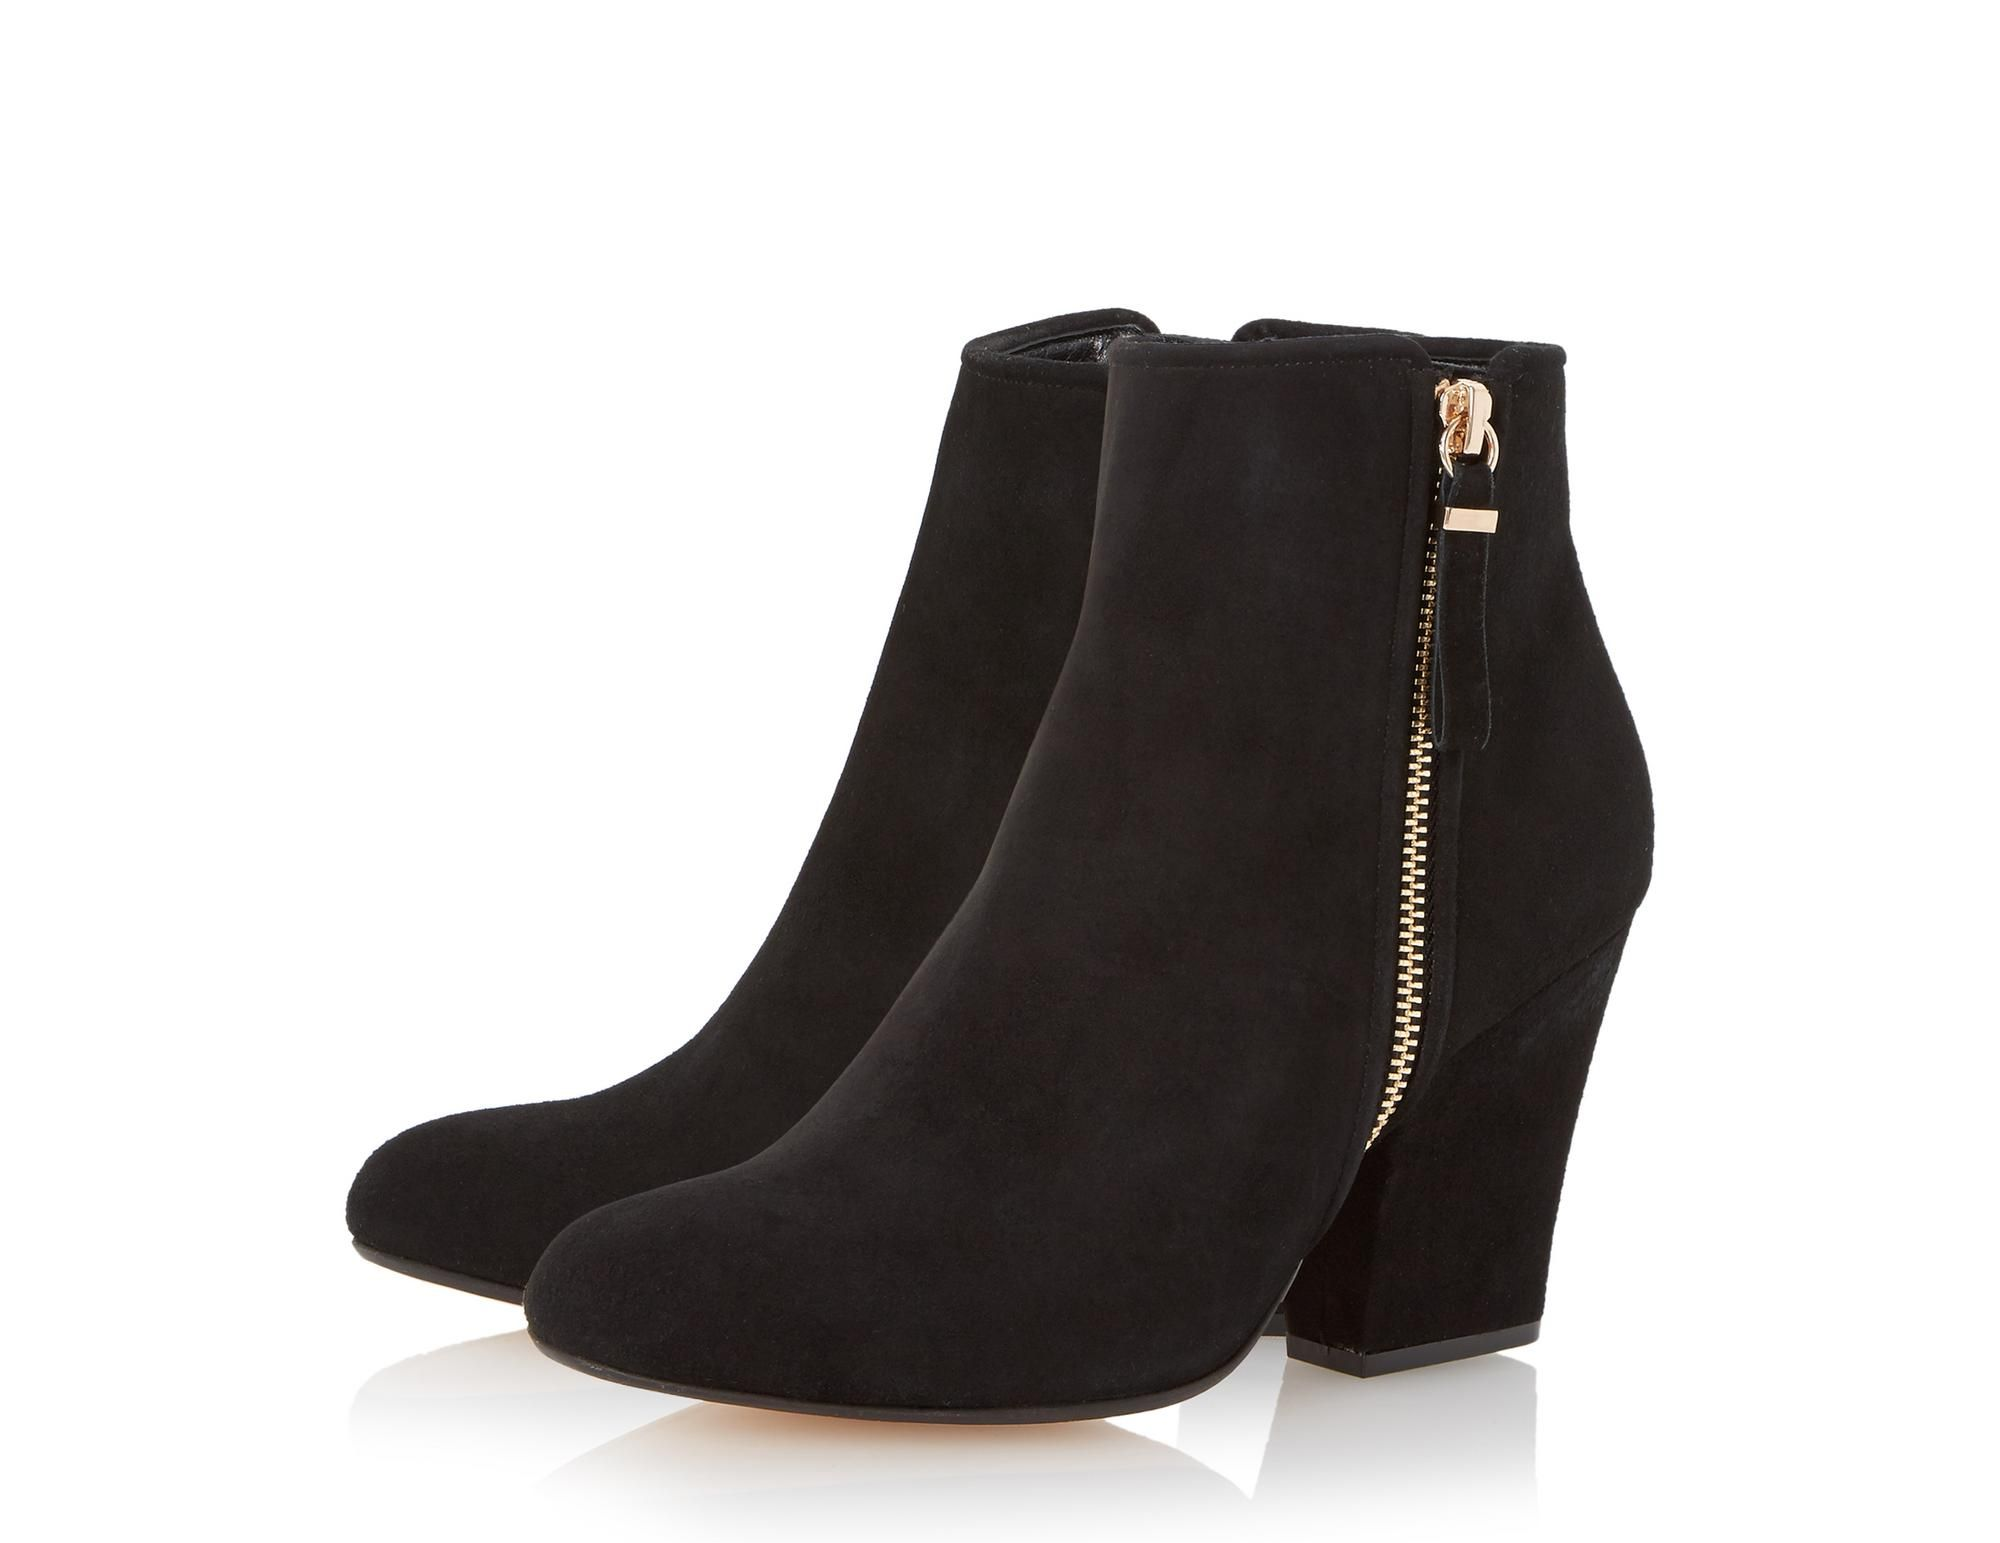 Black heeled ankle boots, Boots, Dune shoes